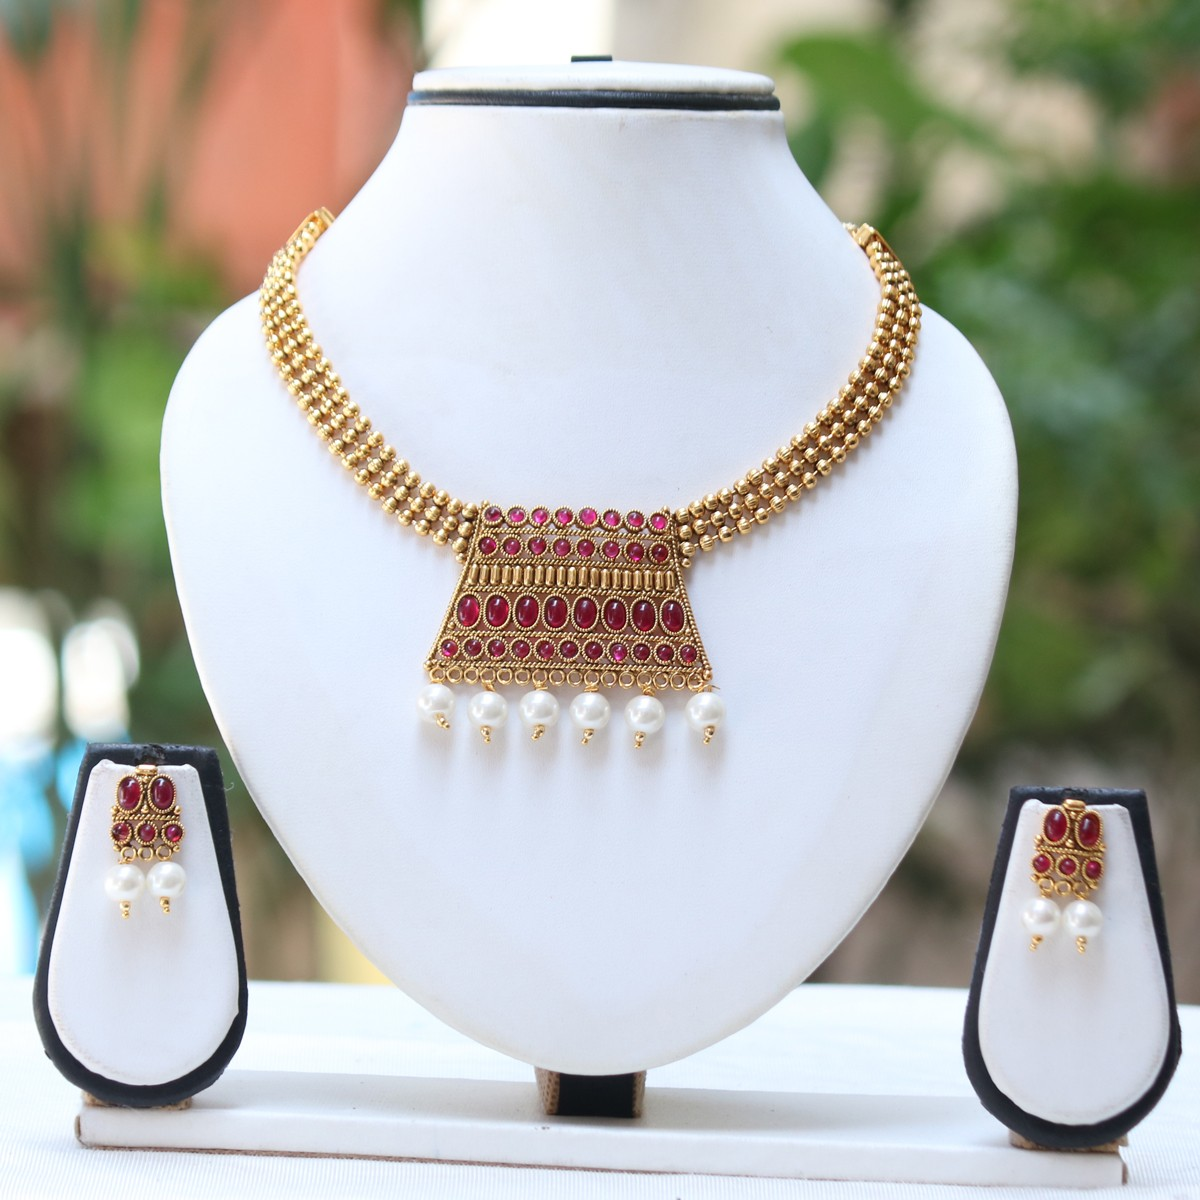 Artificial Jewellery Sets For Wedding: 20 Bridal Artificial Jewellery Designs For Wedding